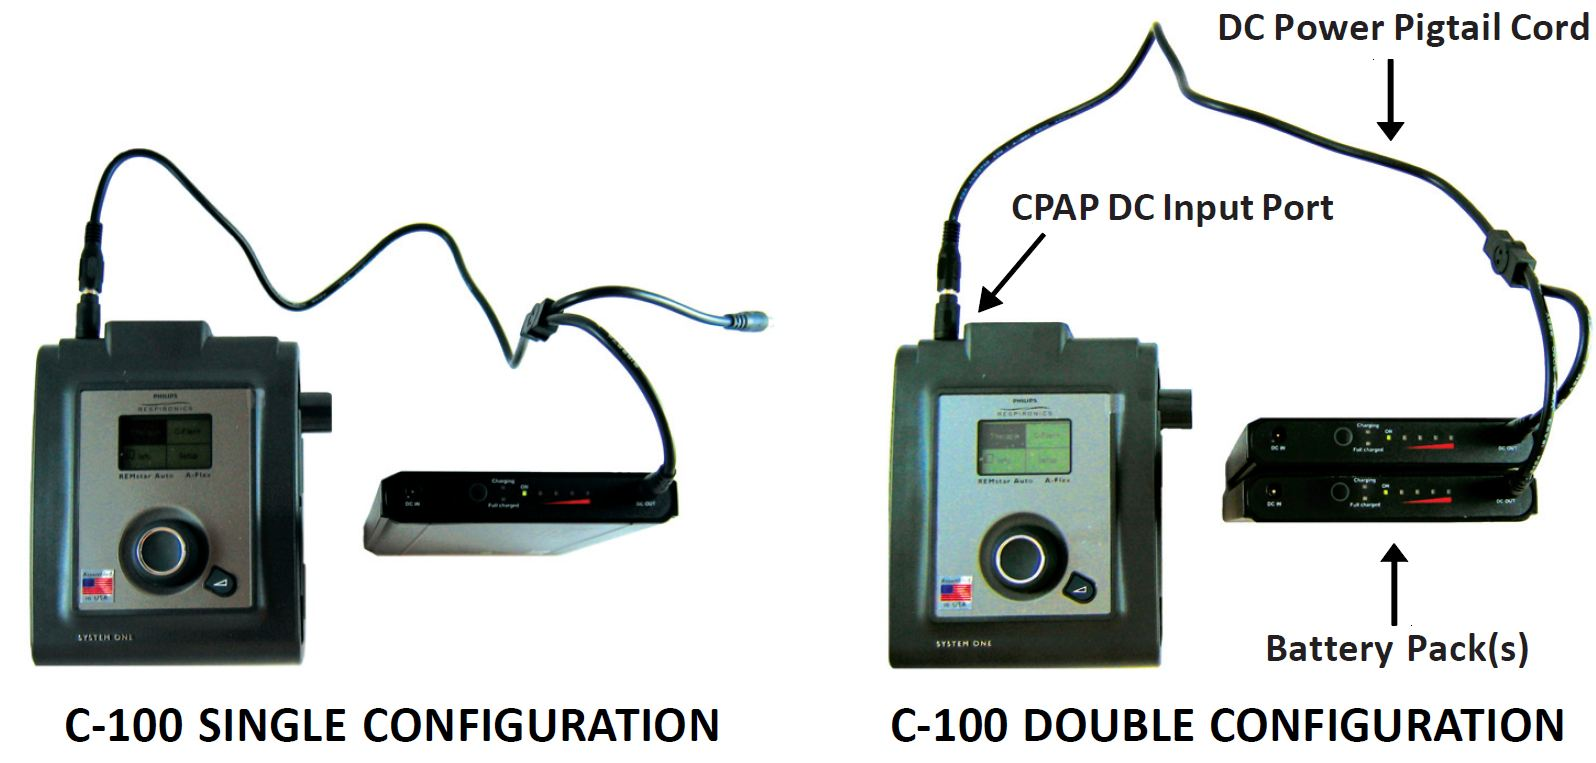 CPAP Battery